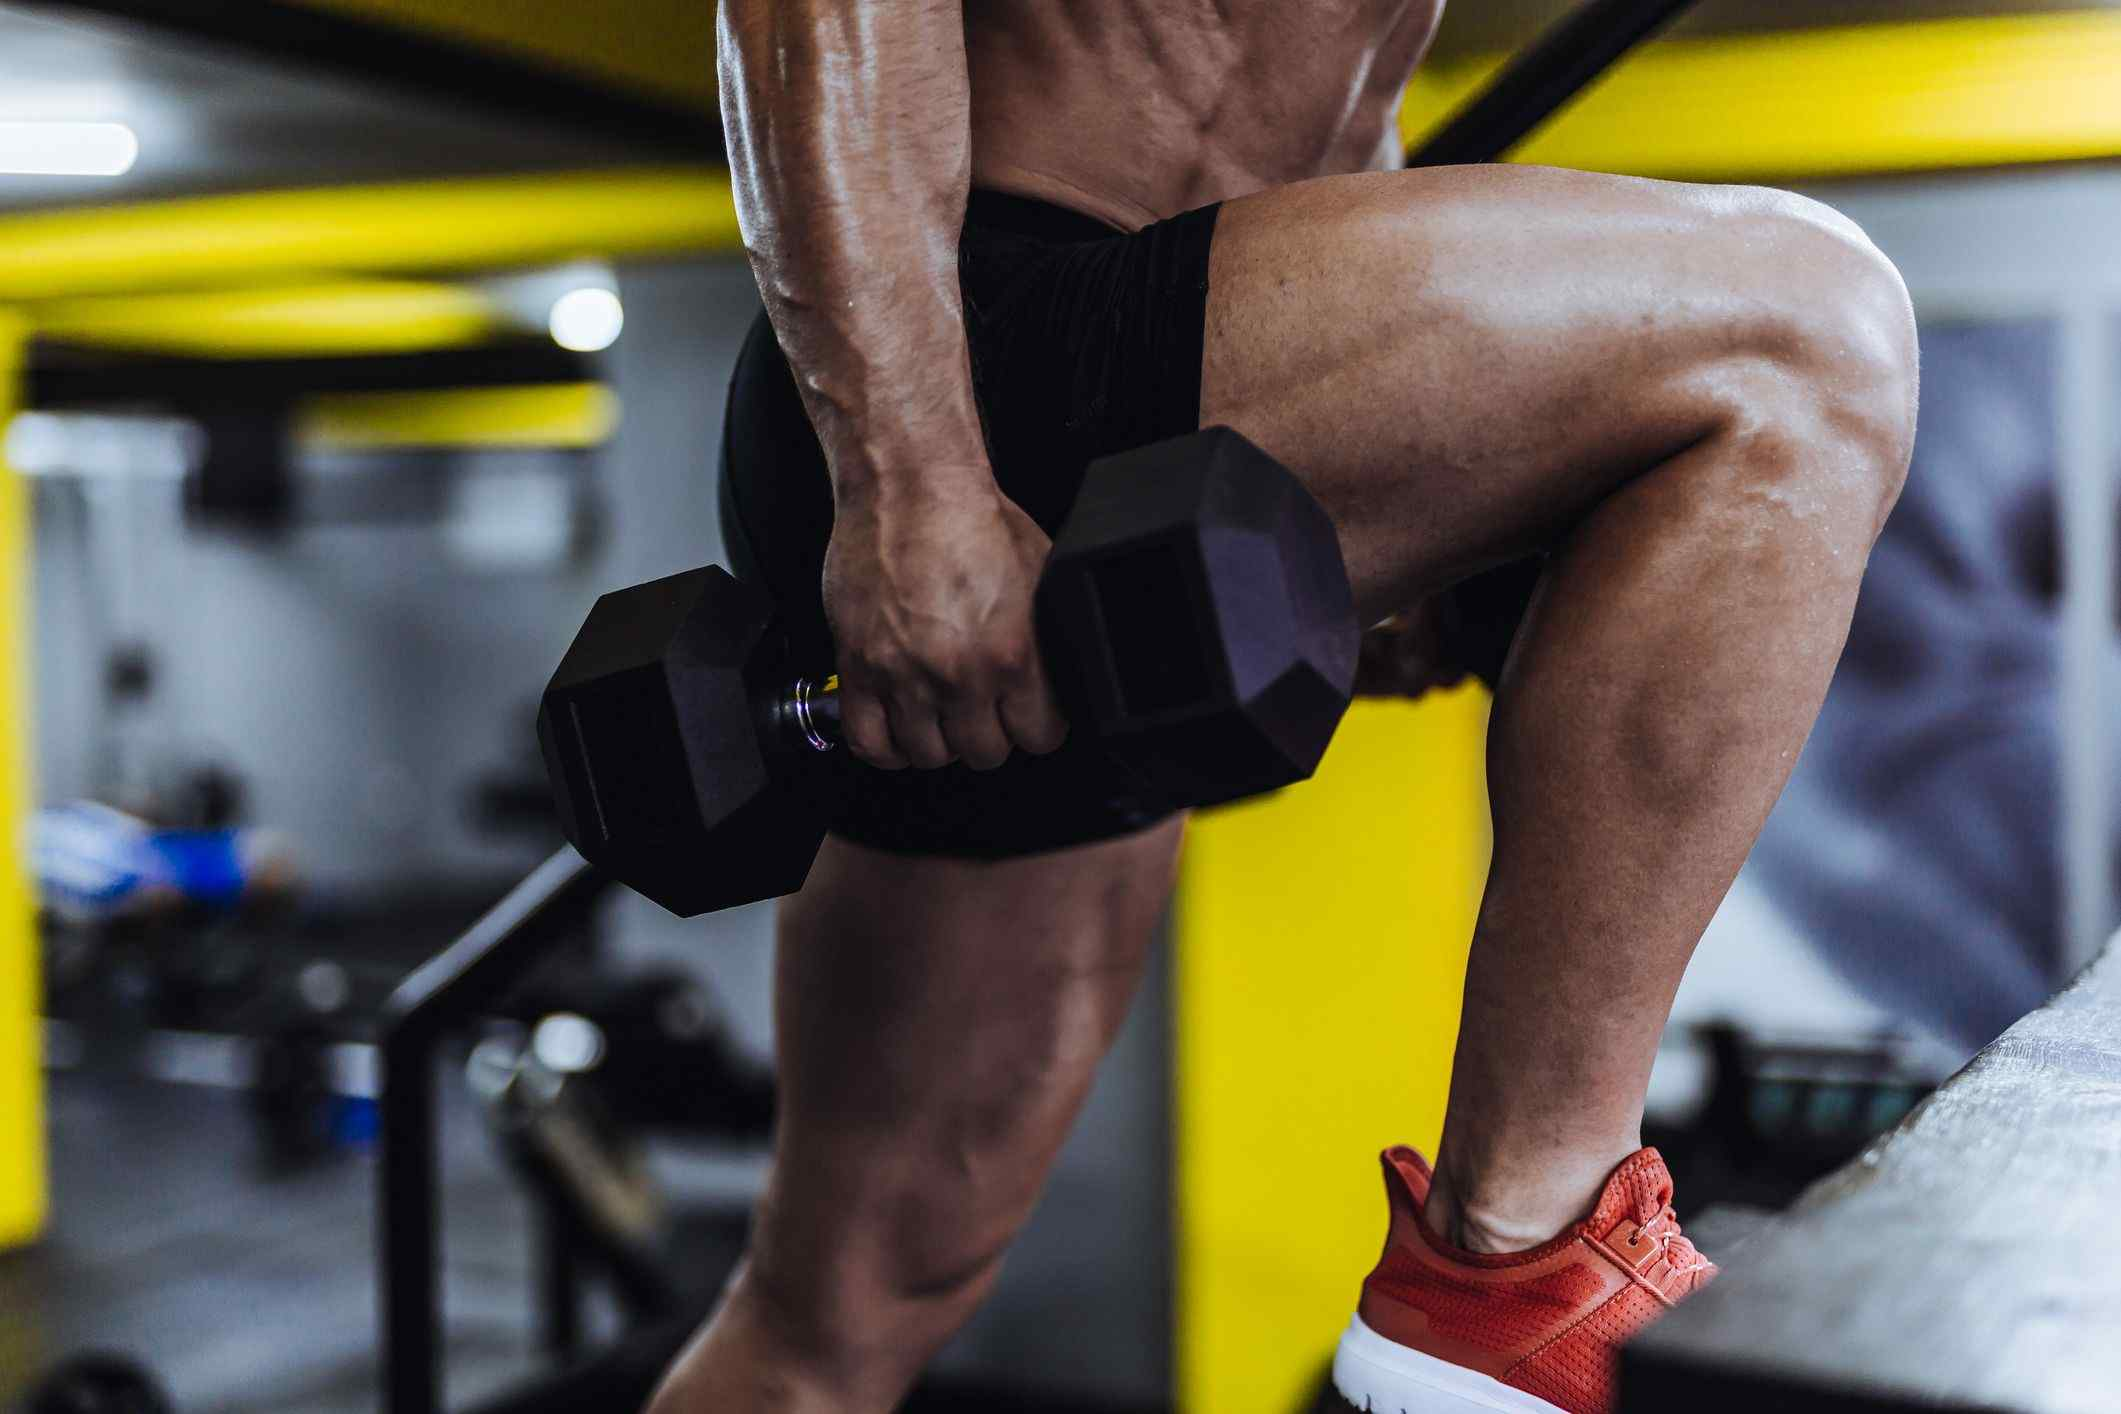 Best exercises for legs